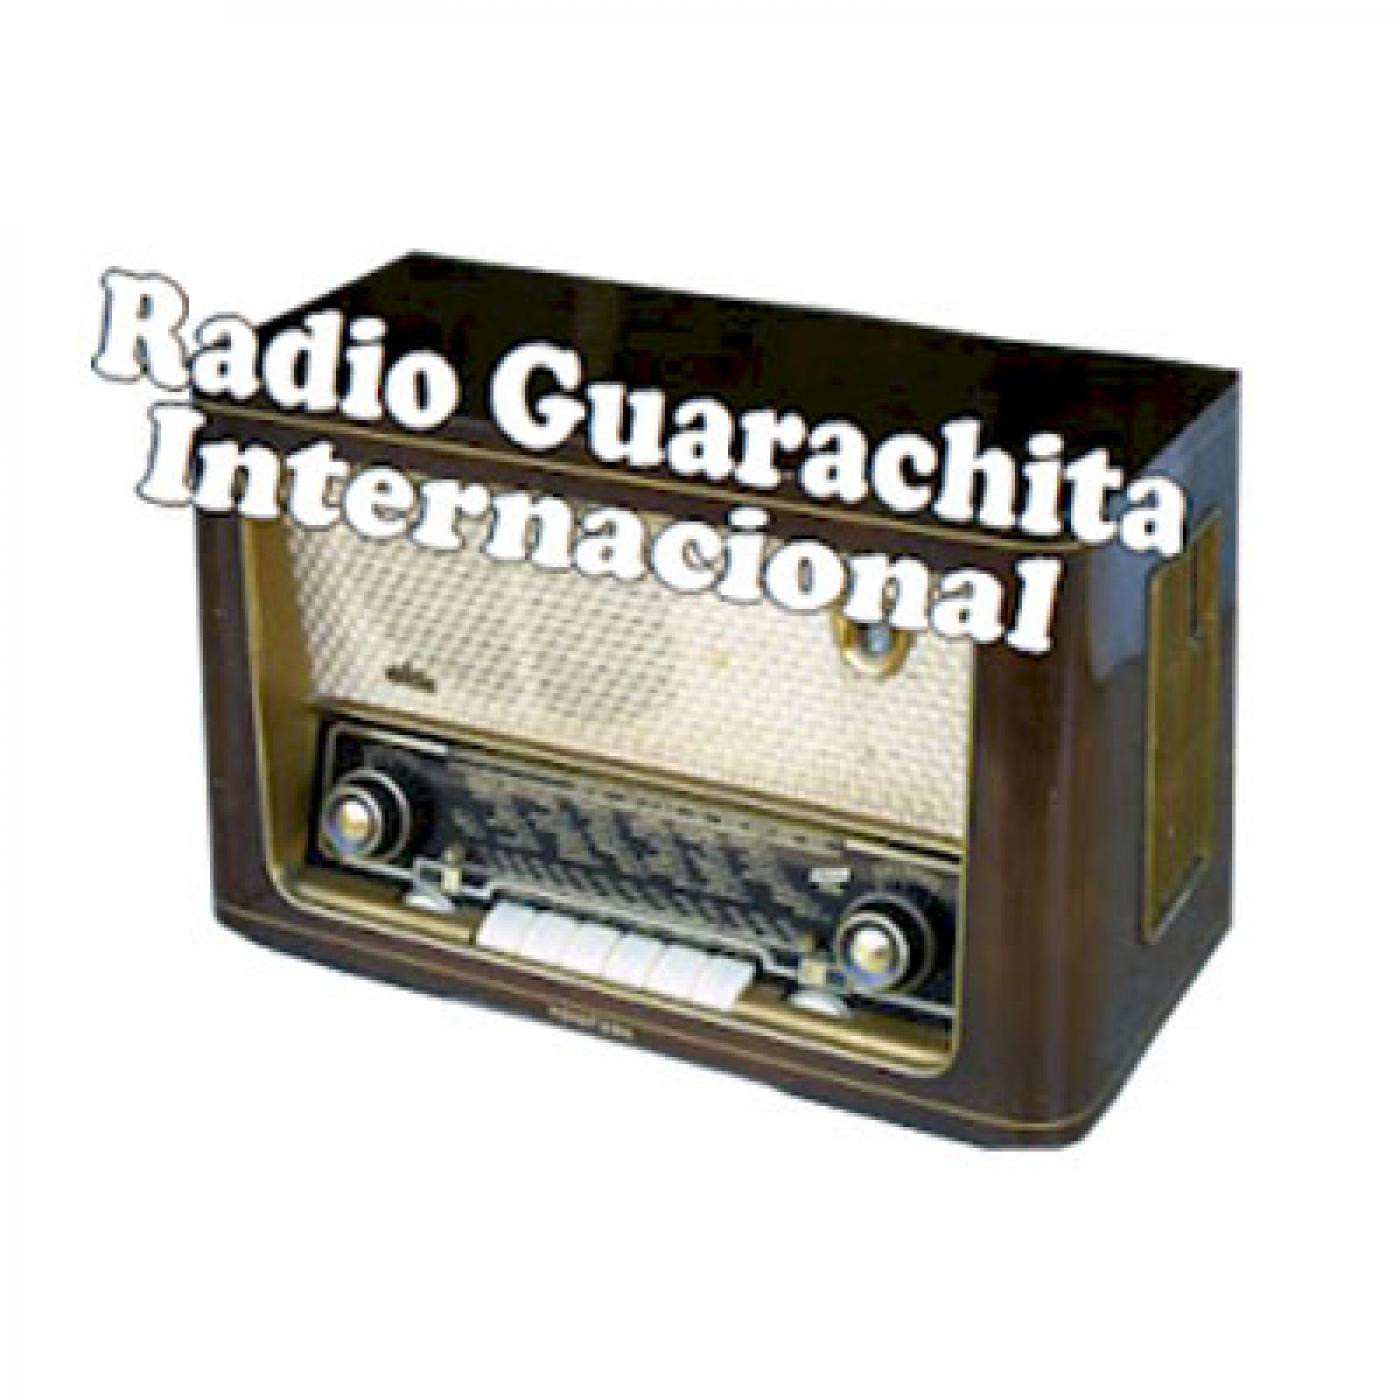 radio-guarachita-internacional live